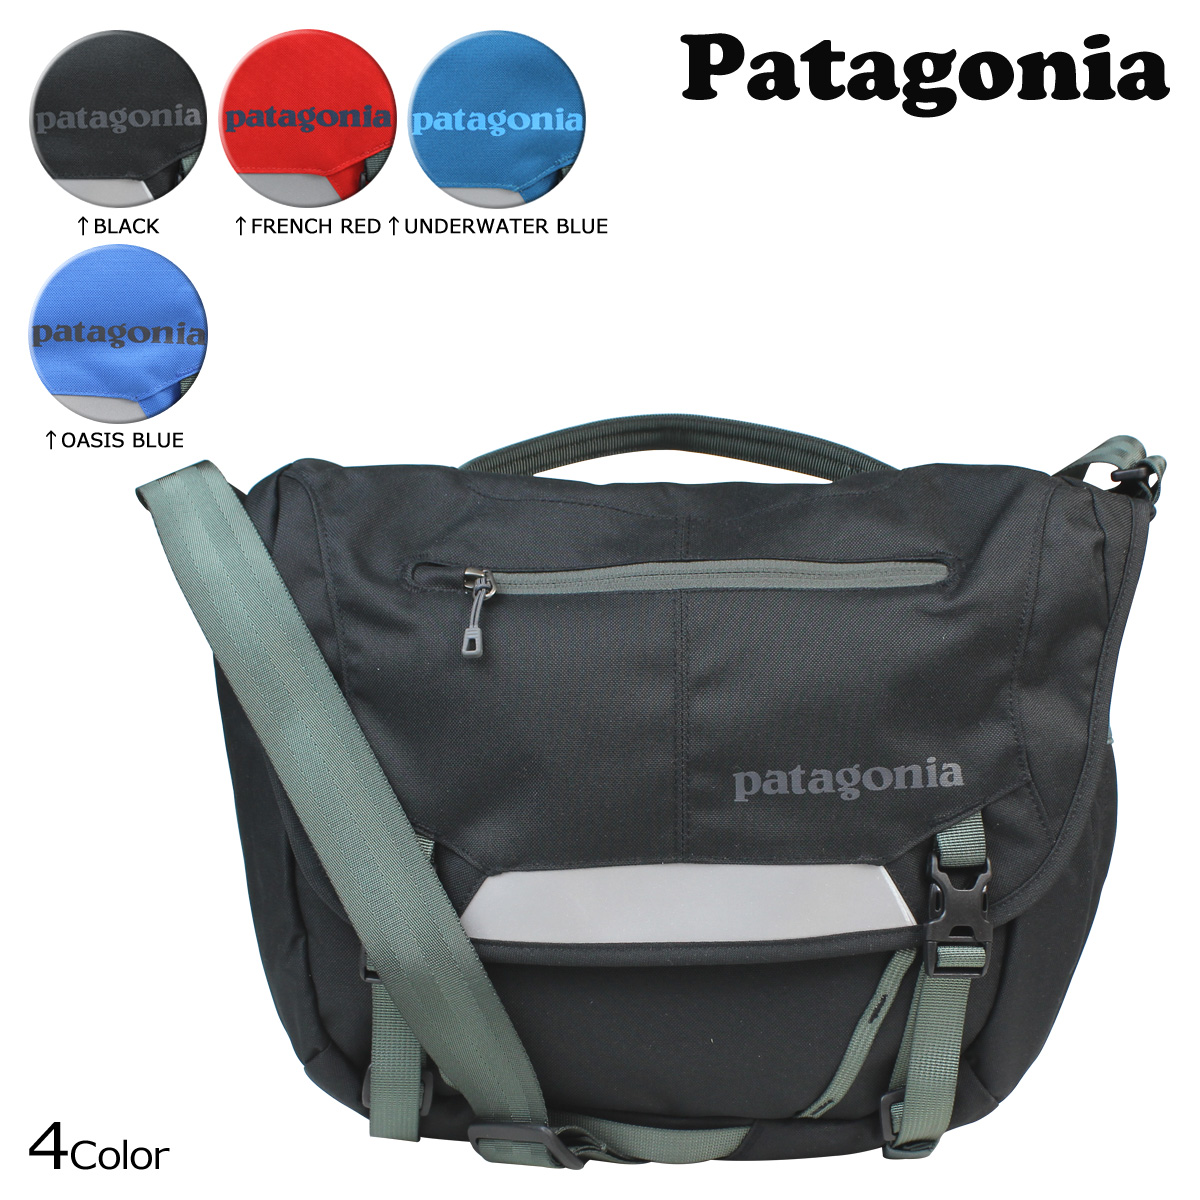 a2a209c3a9b Patagonia patagonia Messenger Bag Black Blue 48267 MiniMass 12 l tanks men  women